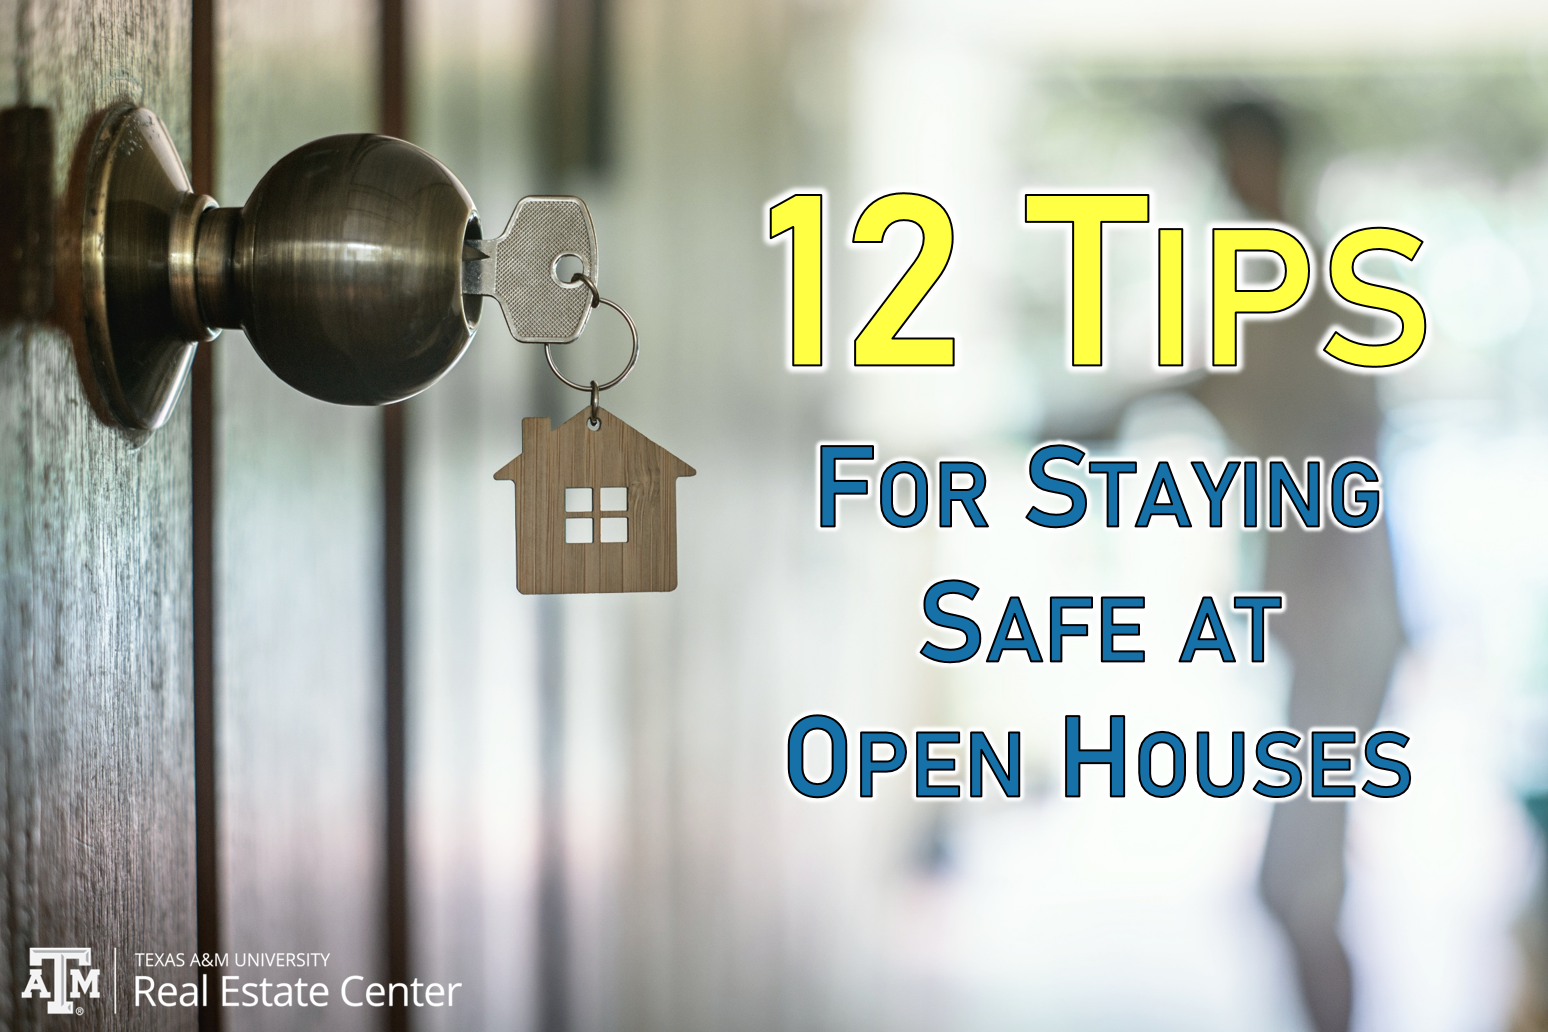 12 tips for staying safe at open houses